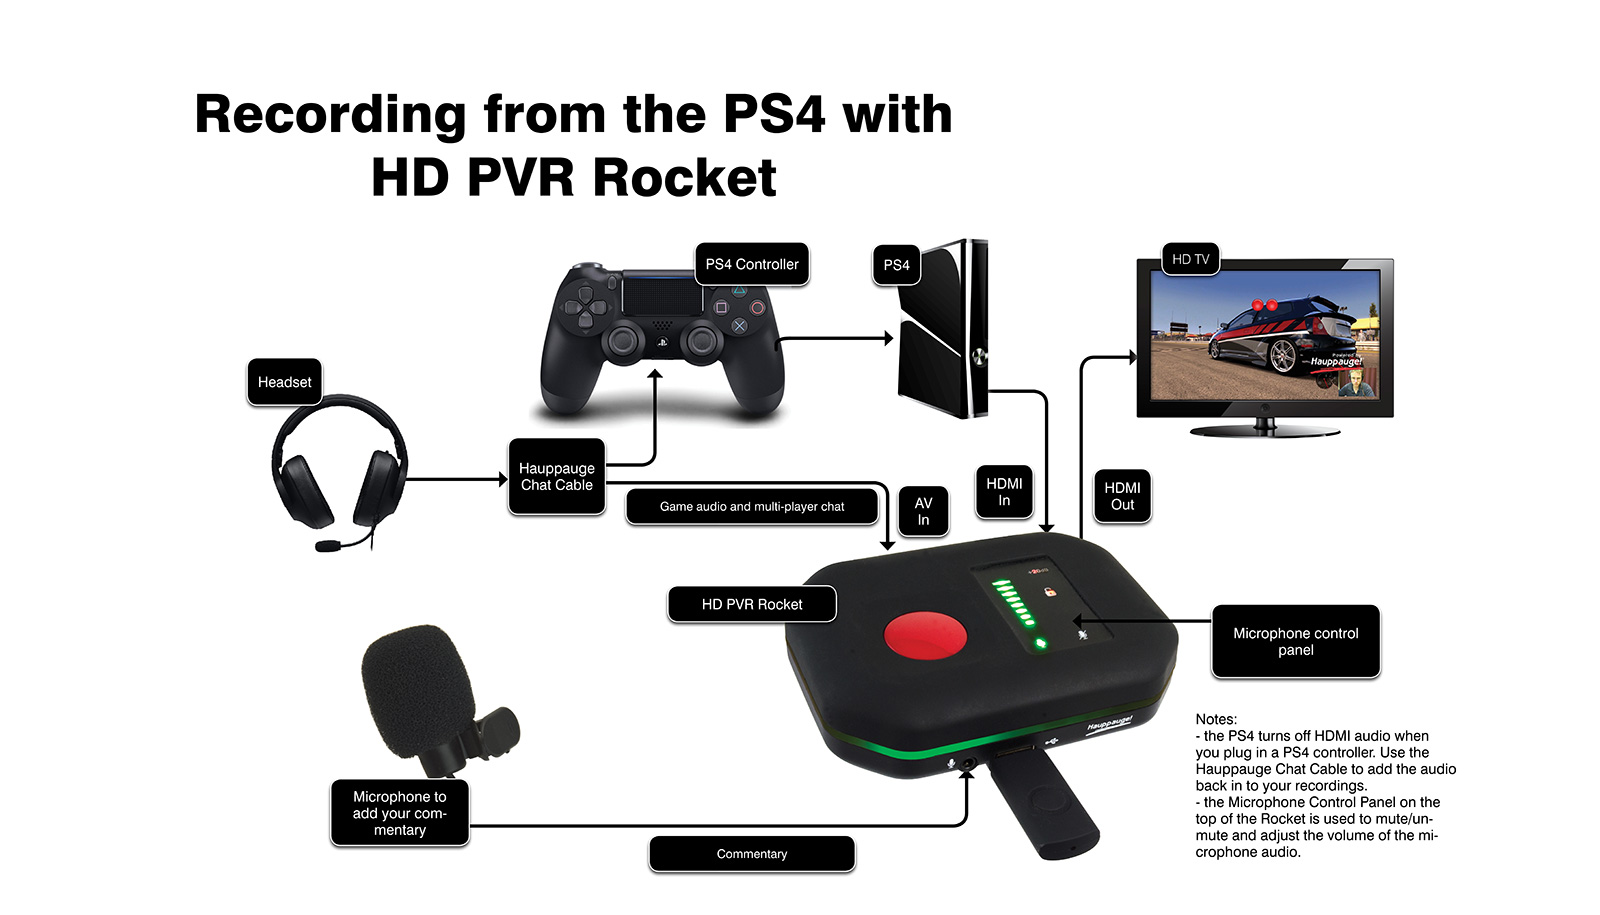 Connecting Rocket to a PS4